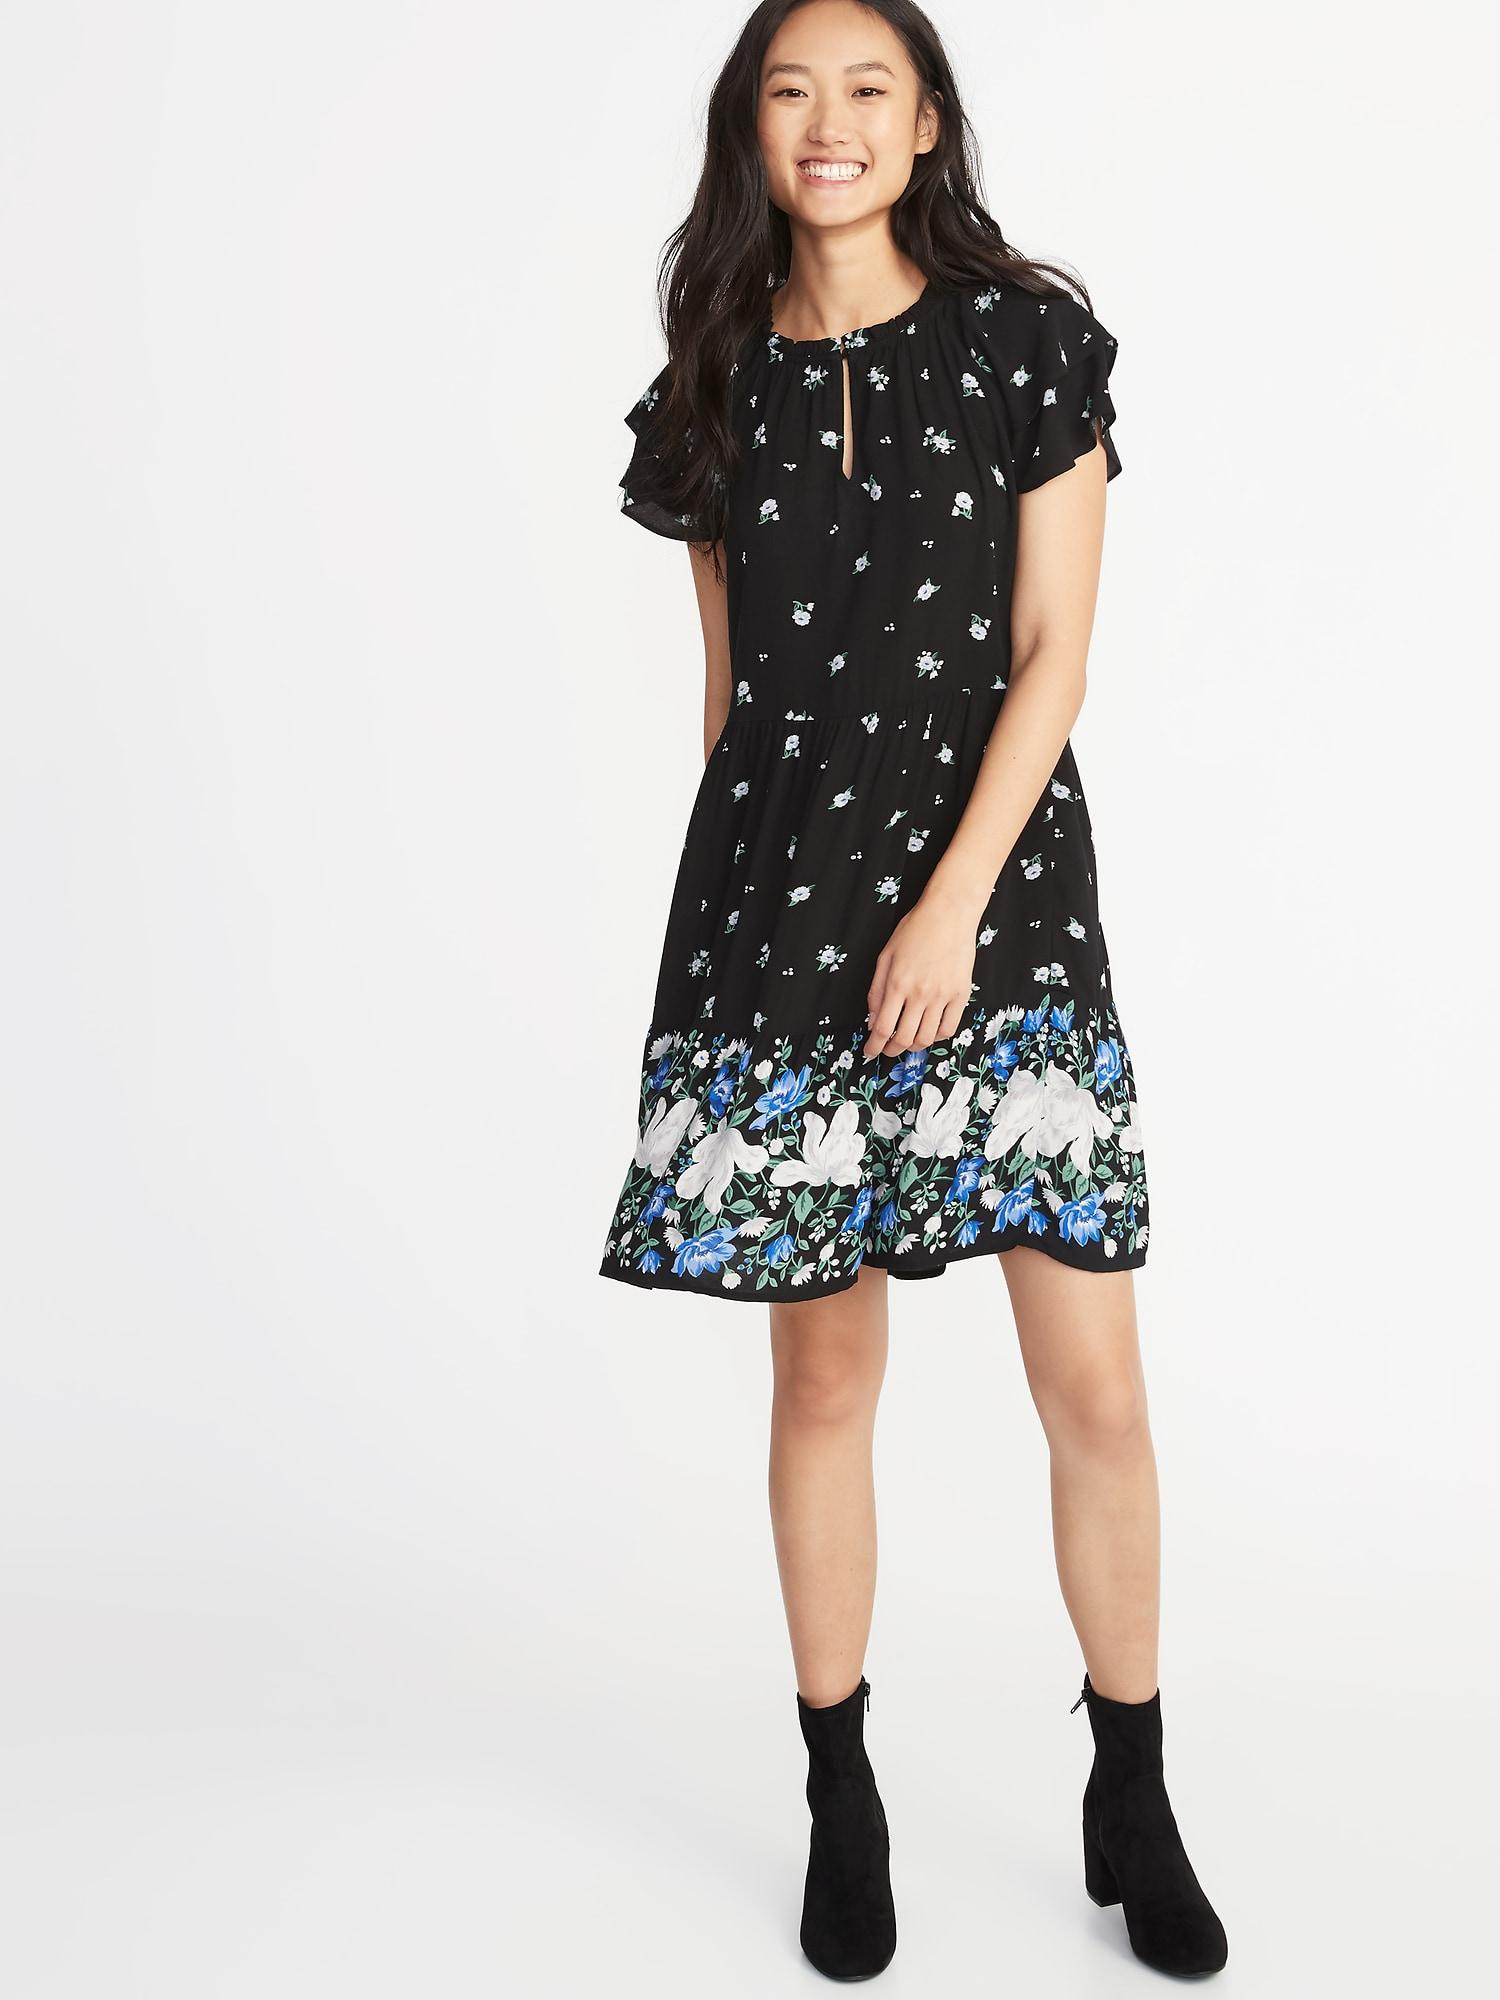 2a857f2bb8f Gallery. Previously sold at  Old Navy · Women s Diane Von Furstenberg Bella  Women s Peter Pan Collar Dresses ...